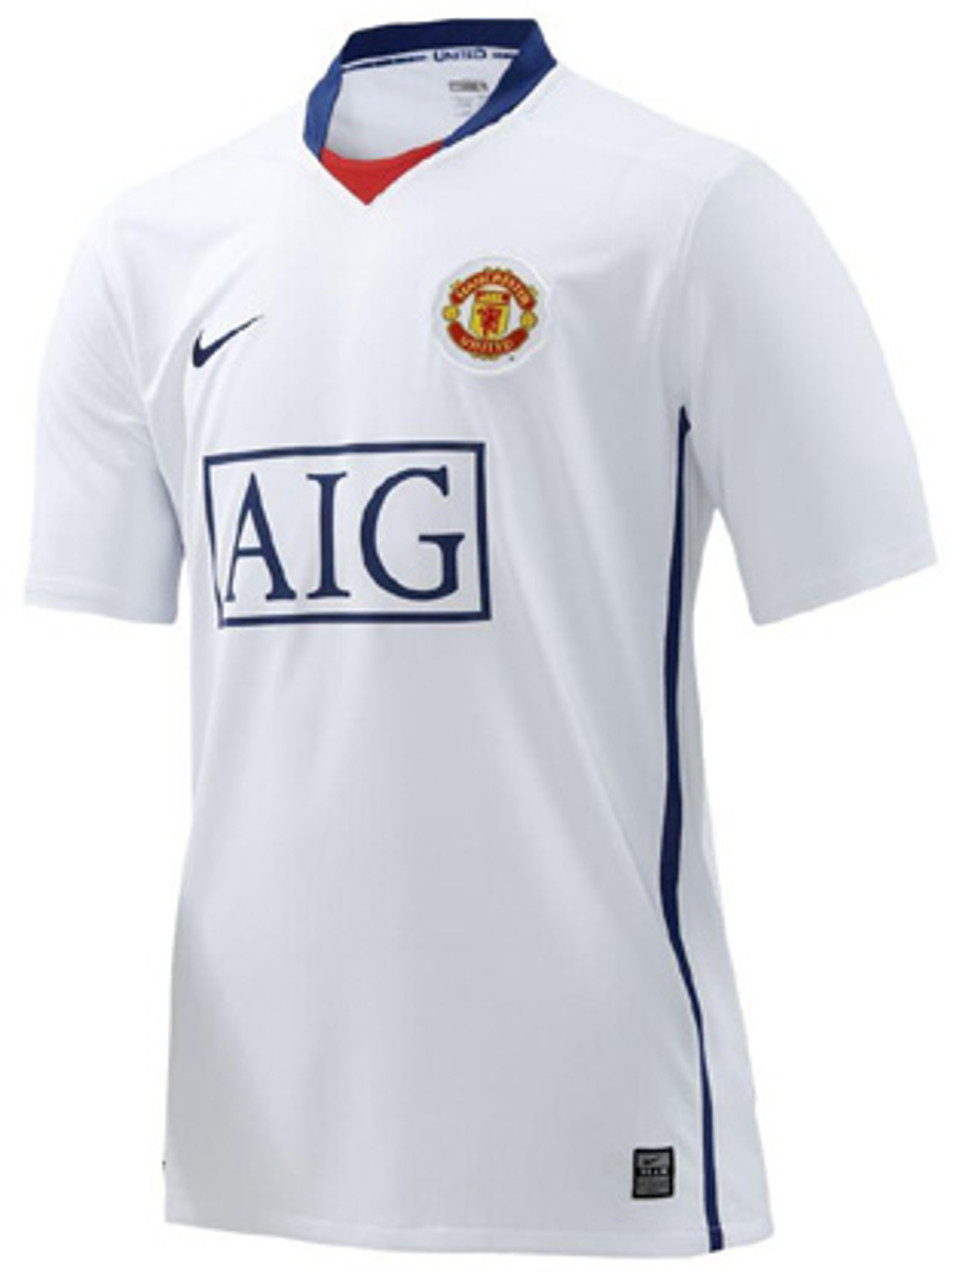 free shipping b7724 77d94 NIKE MANCHESTER UNITED 2009 AWAY JERSEY WHITE